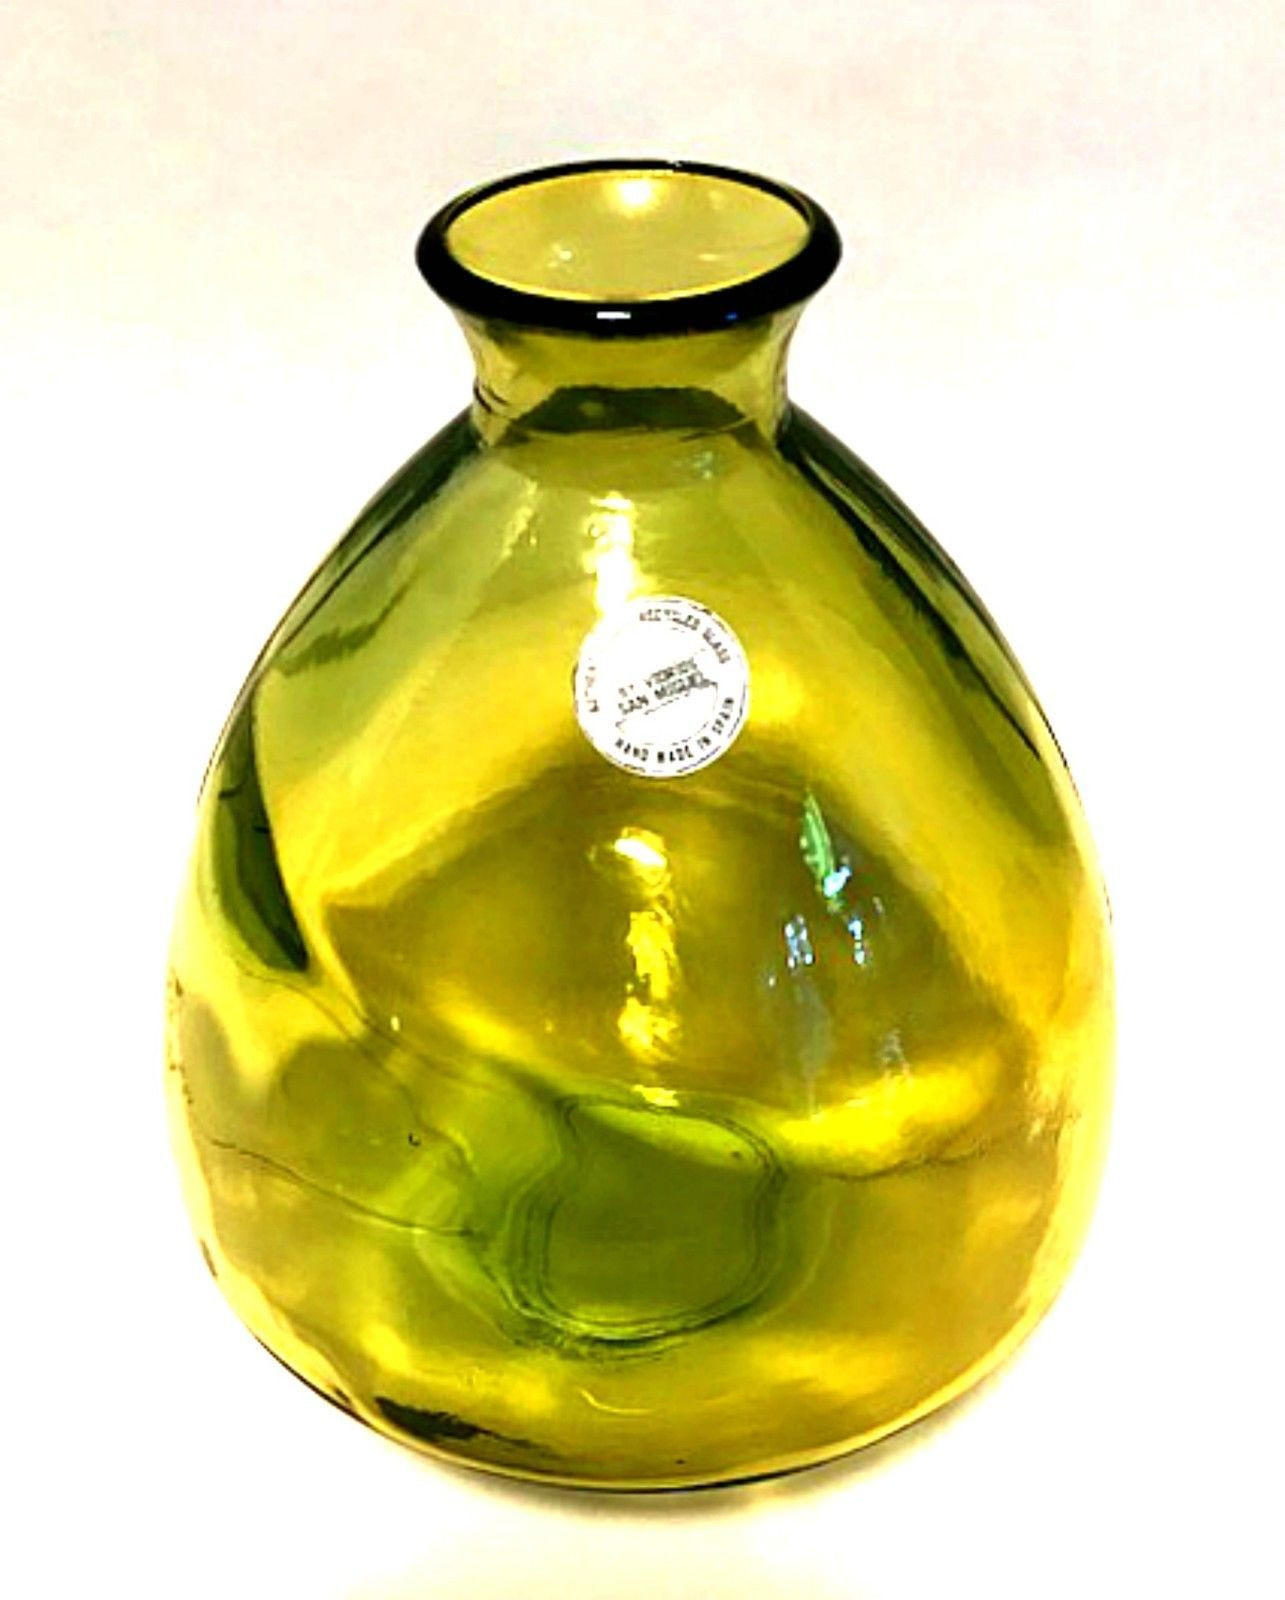 vidrios san miguel vases of vidrios san miguel bulb vase chartreuse and 50 similar items inside vidrios san miguel bulb vase chartreuse and 50 similar items s l1600